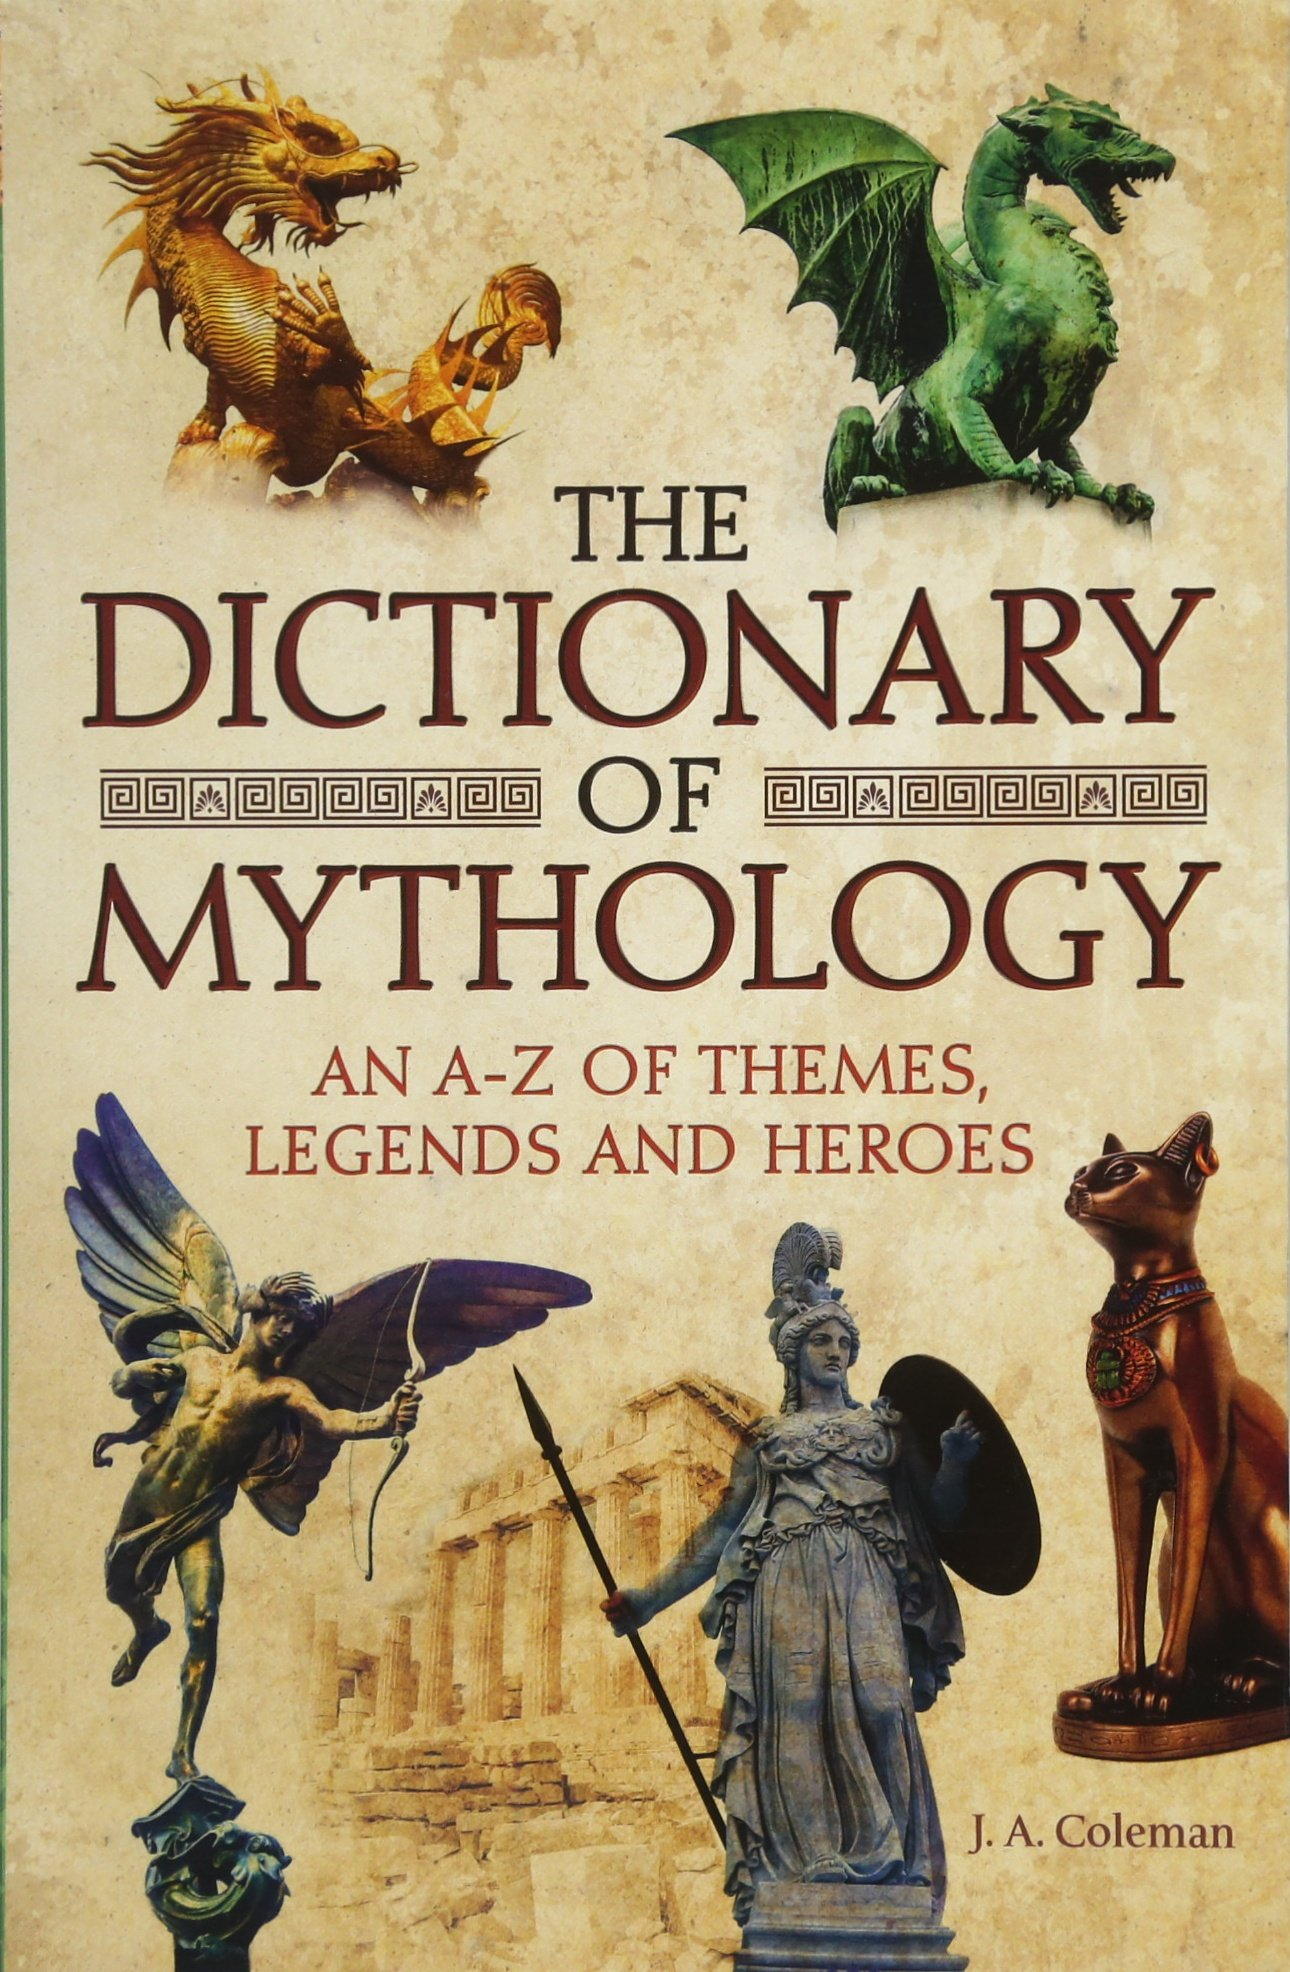 Download The Dictionary of Mythology: An A-Z of Themes, Legends and Heroes PDF